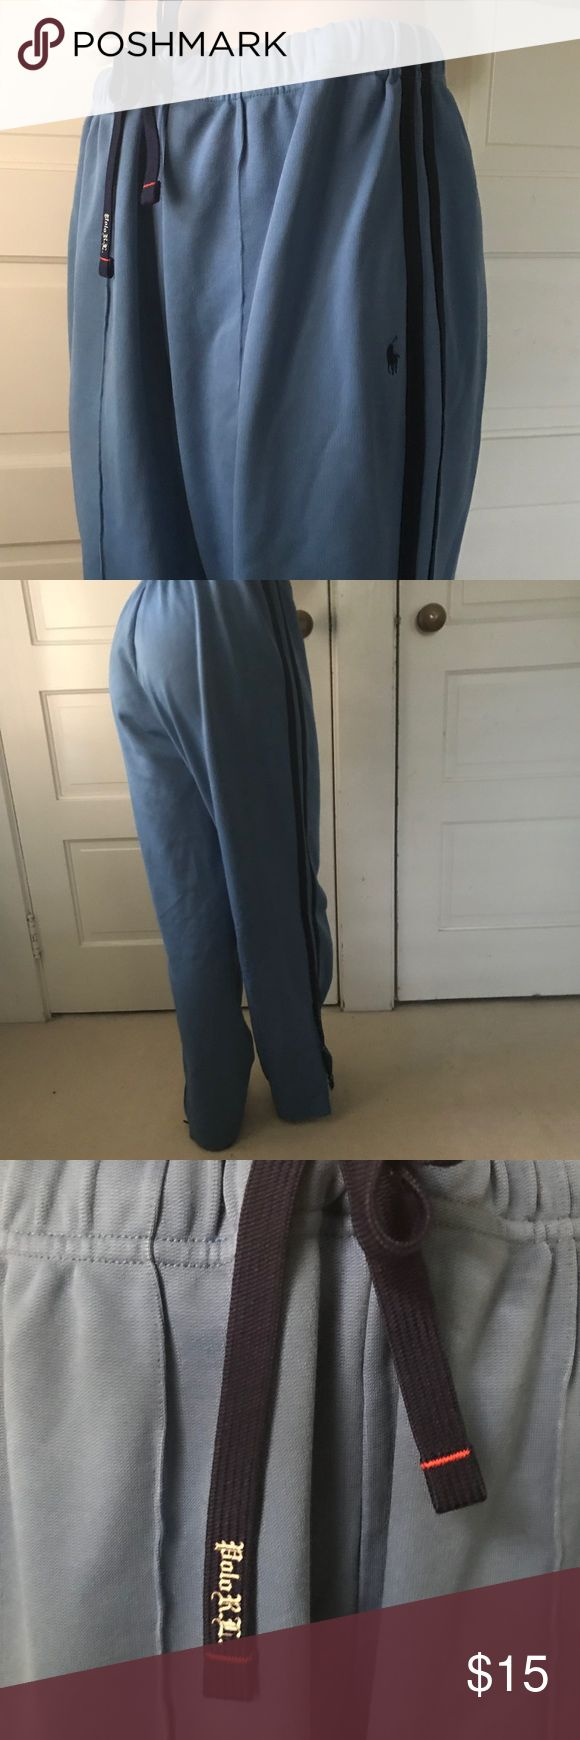 polo sweatpants blue comfy polo sweatpants. good condition. make an offer:) Polo by Ralph Lauren Pants Track Pants & Joggers